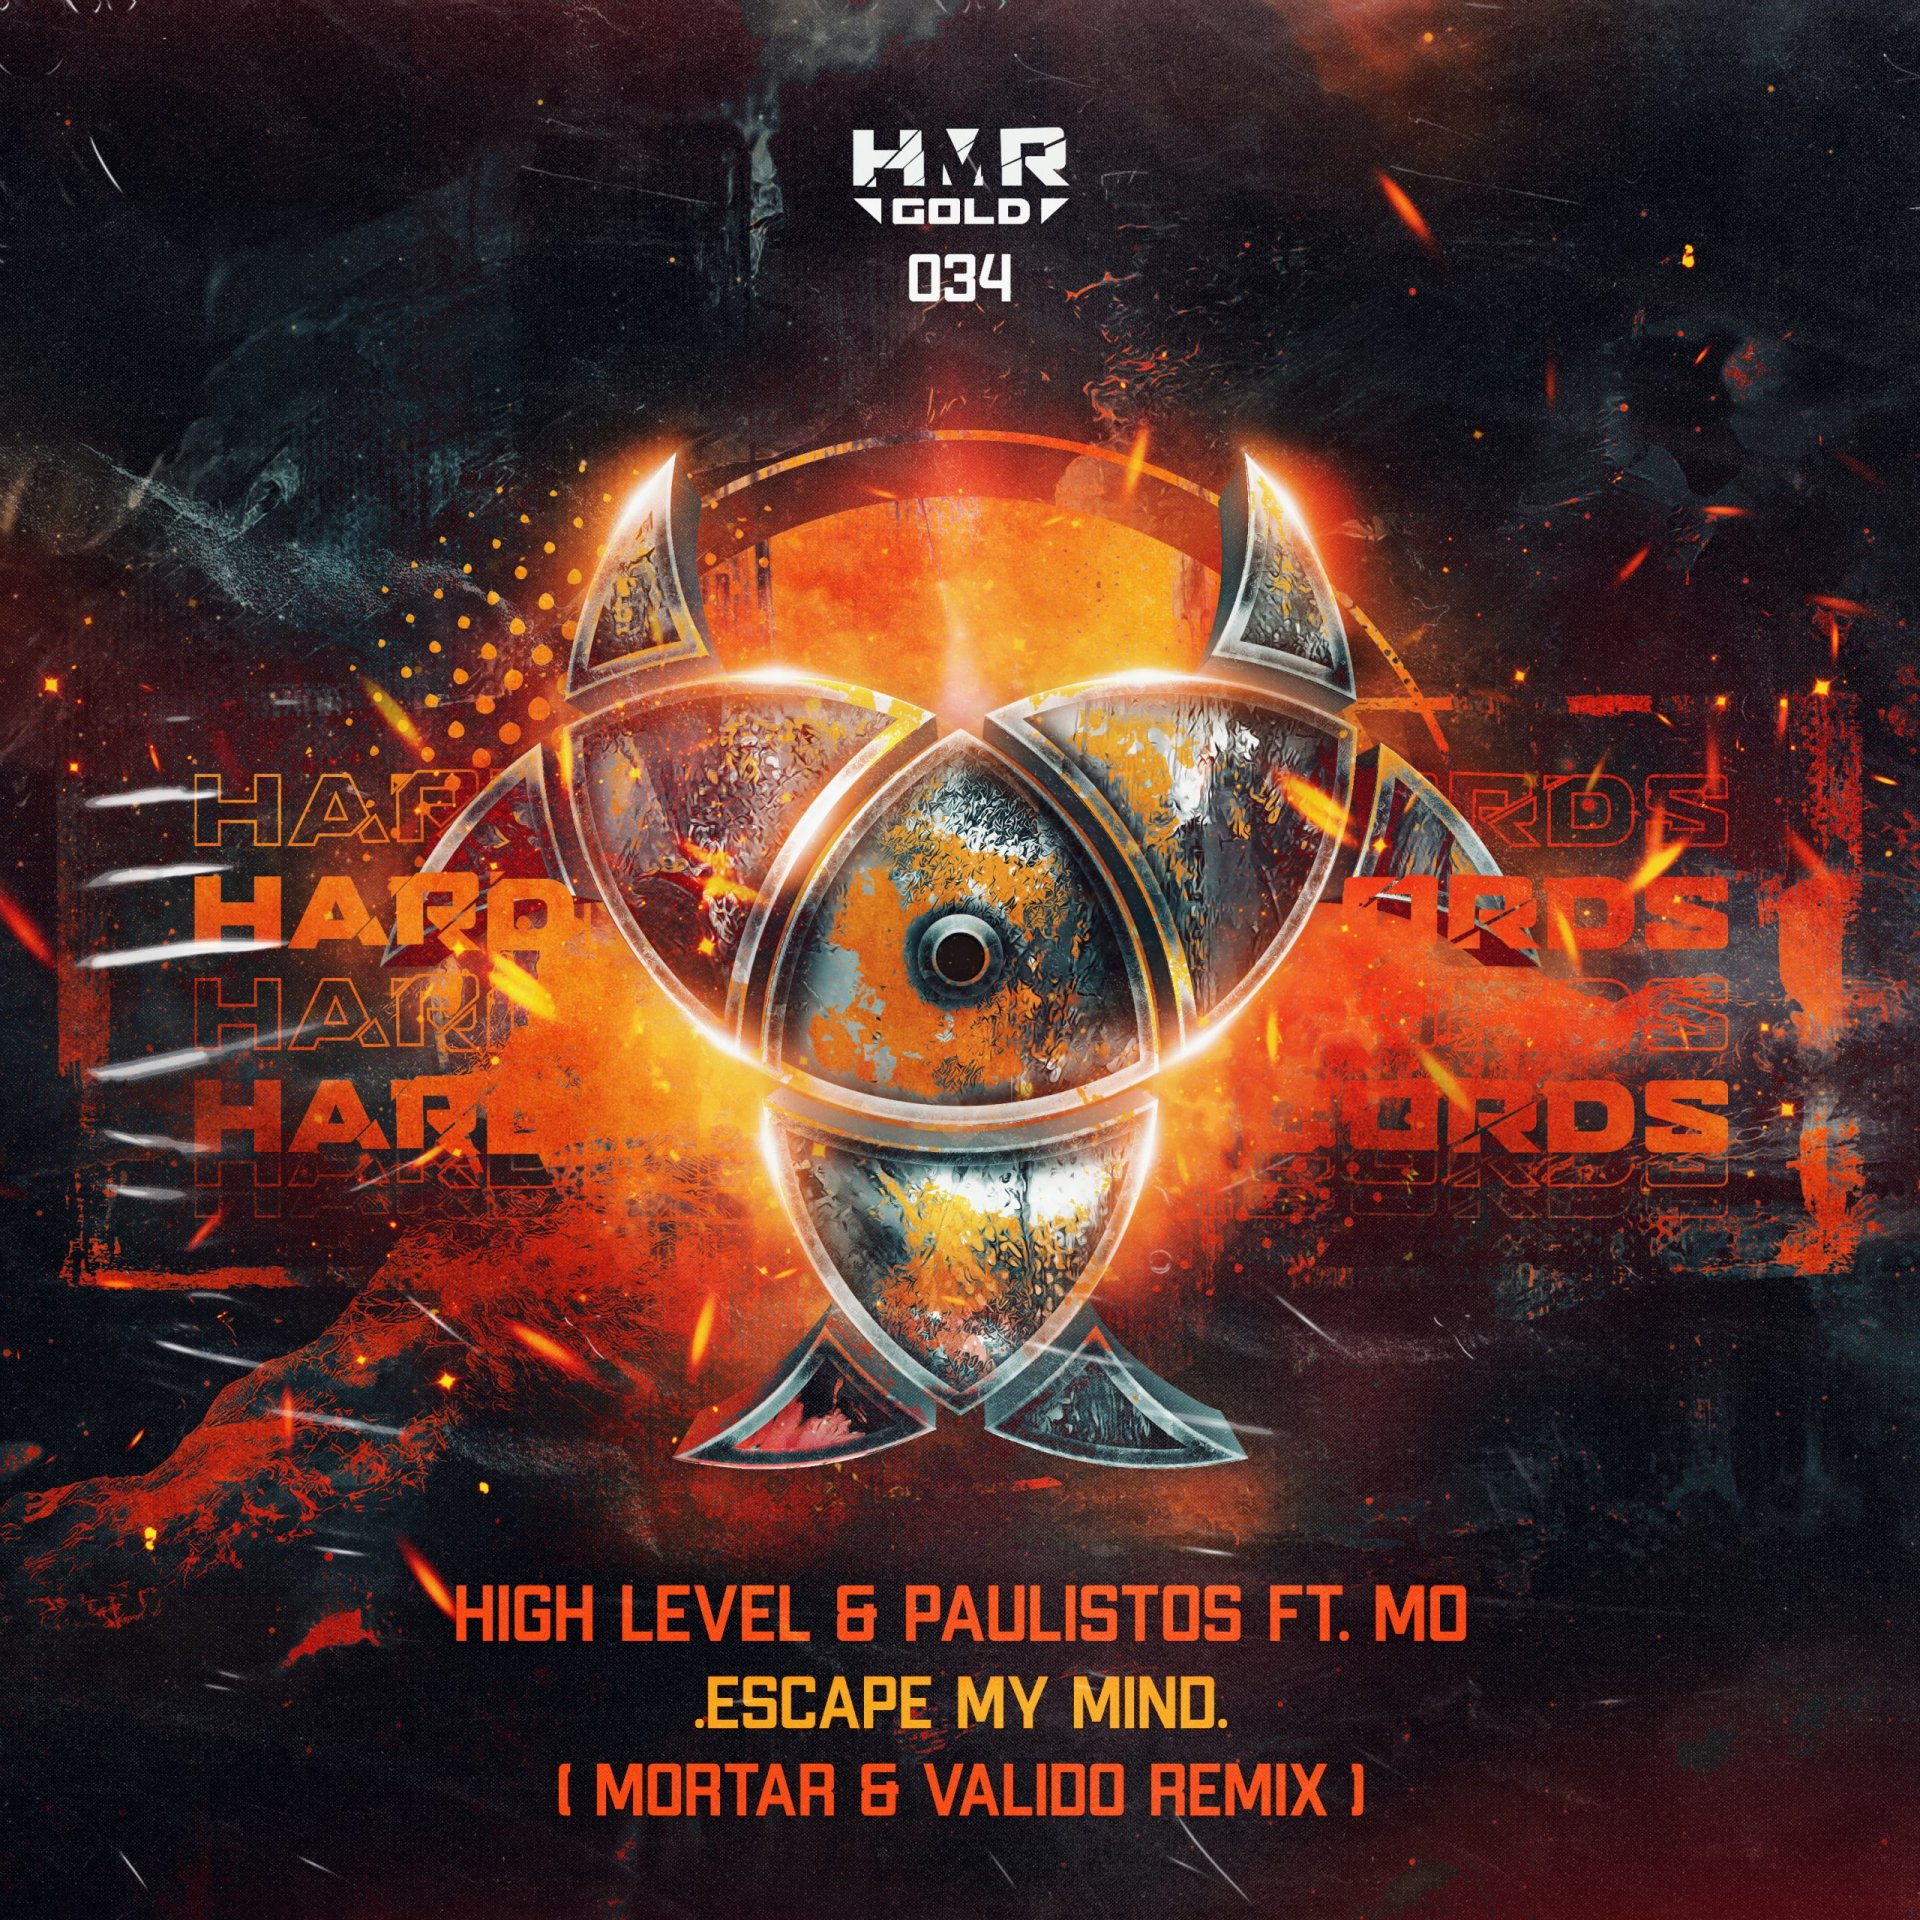 Escape My Mind (Mortar & Valido Remix) by High Level & Paulistos ft. Mo